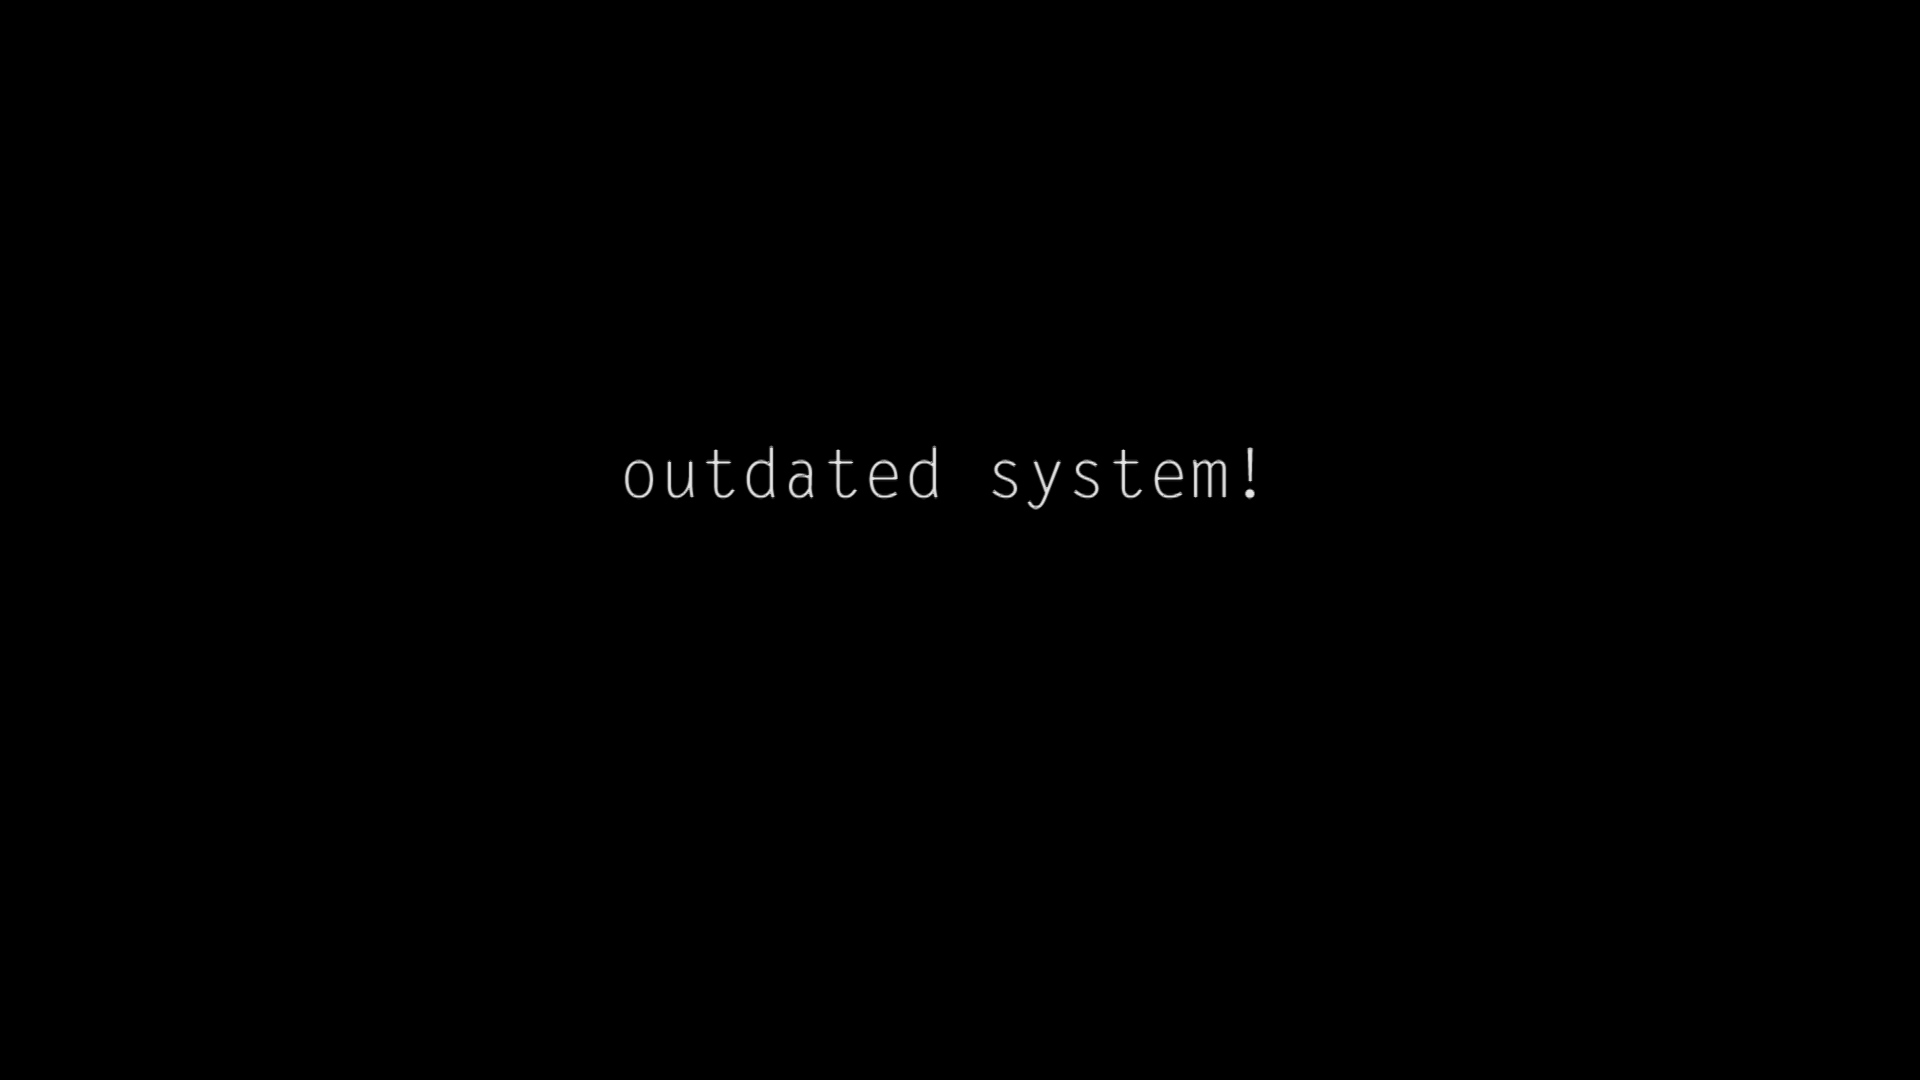 outdated system!